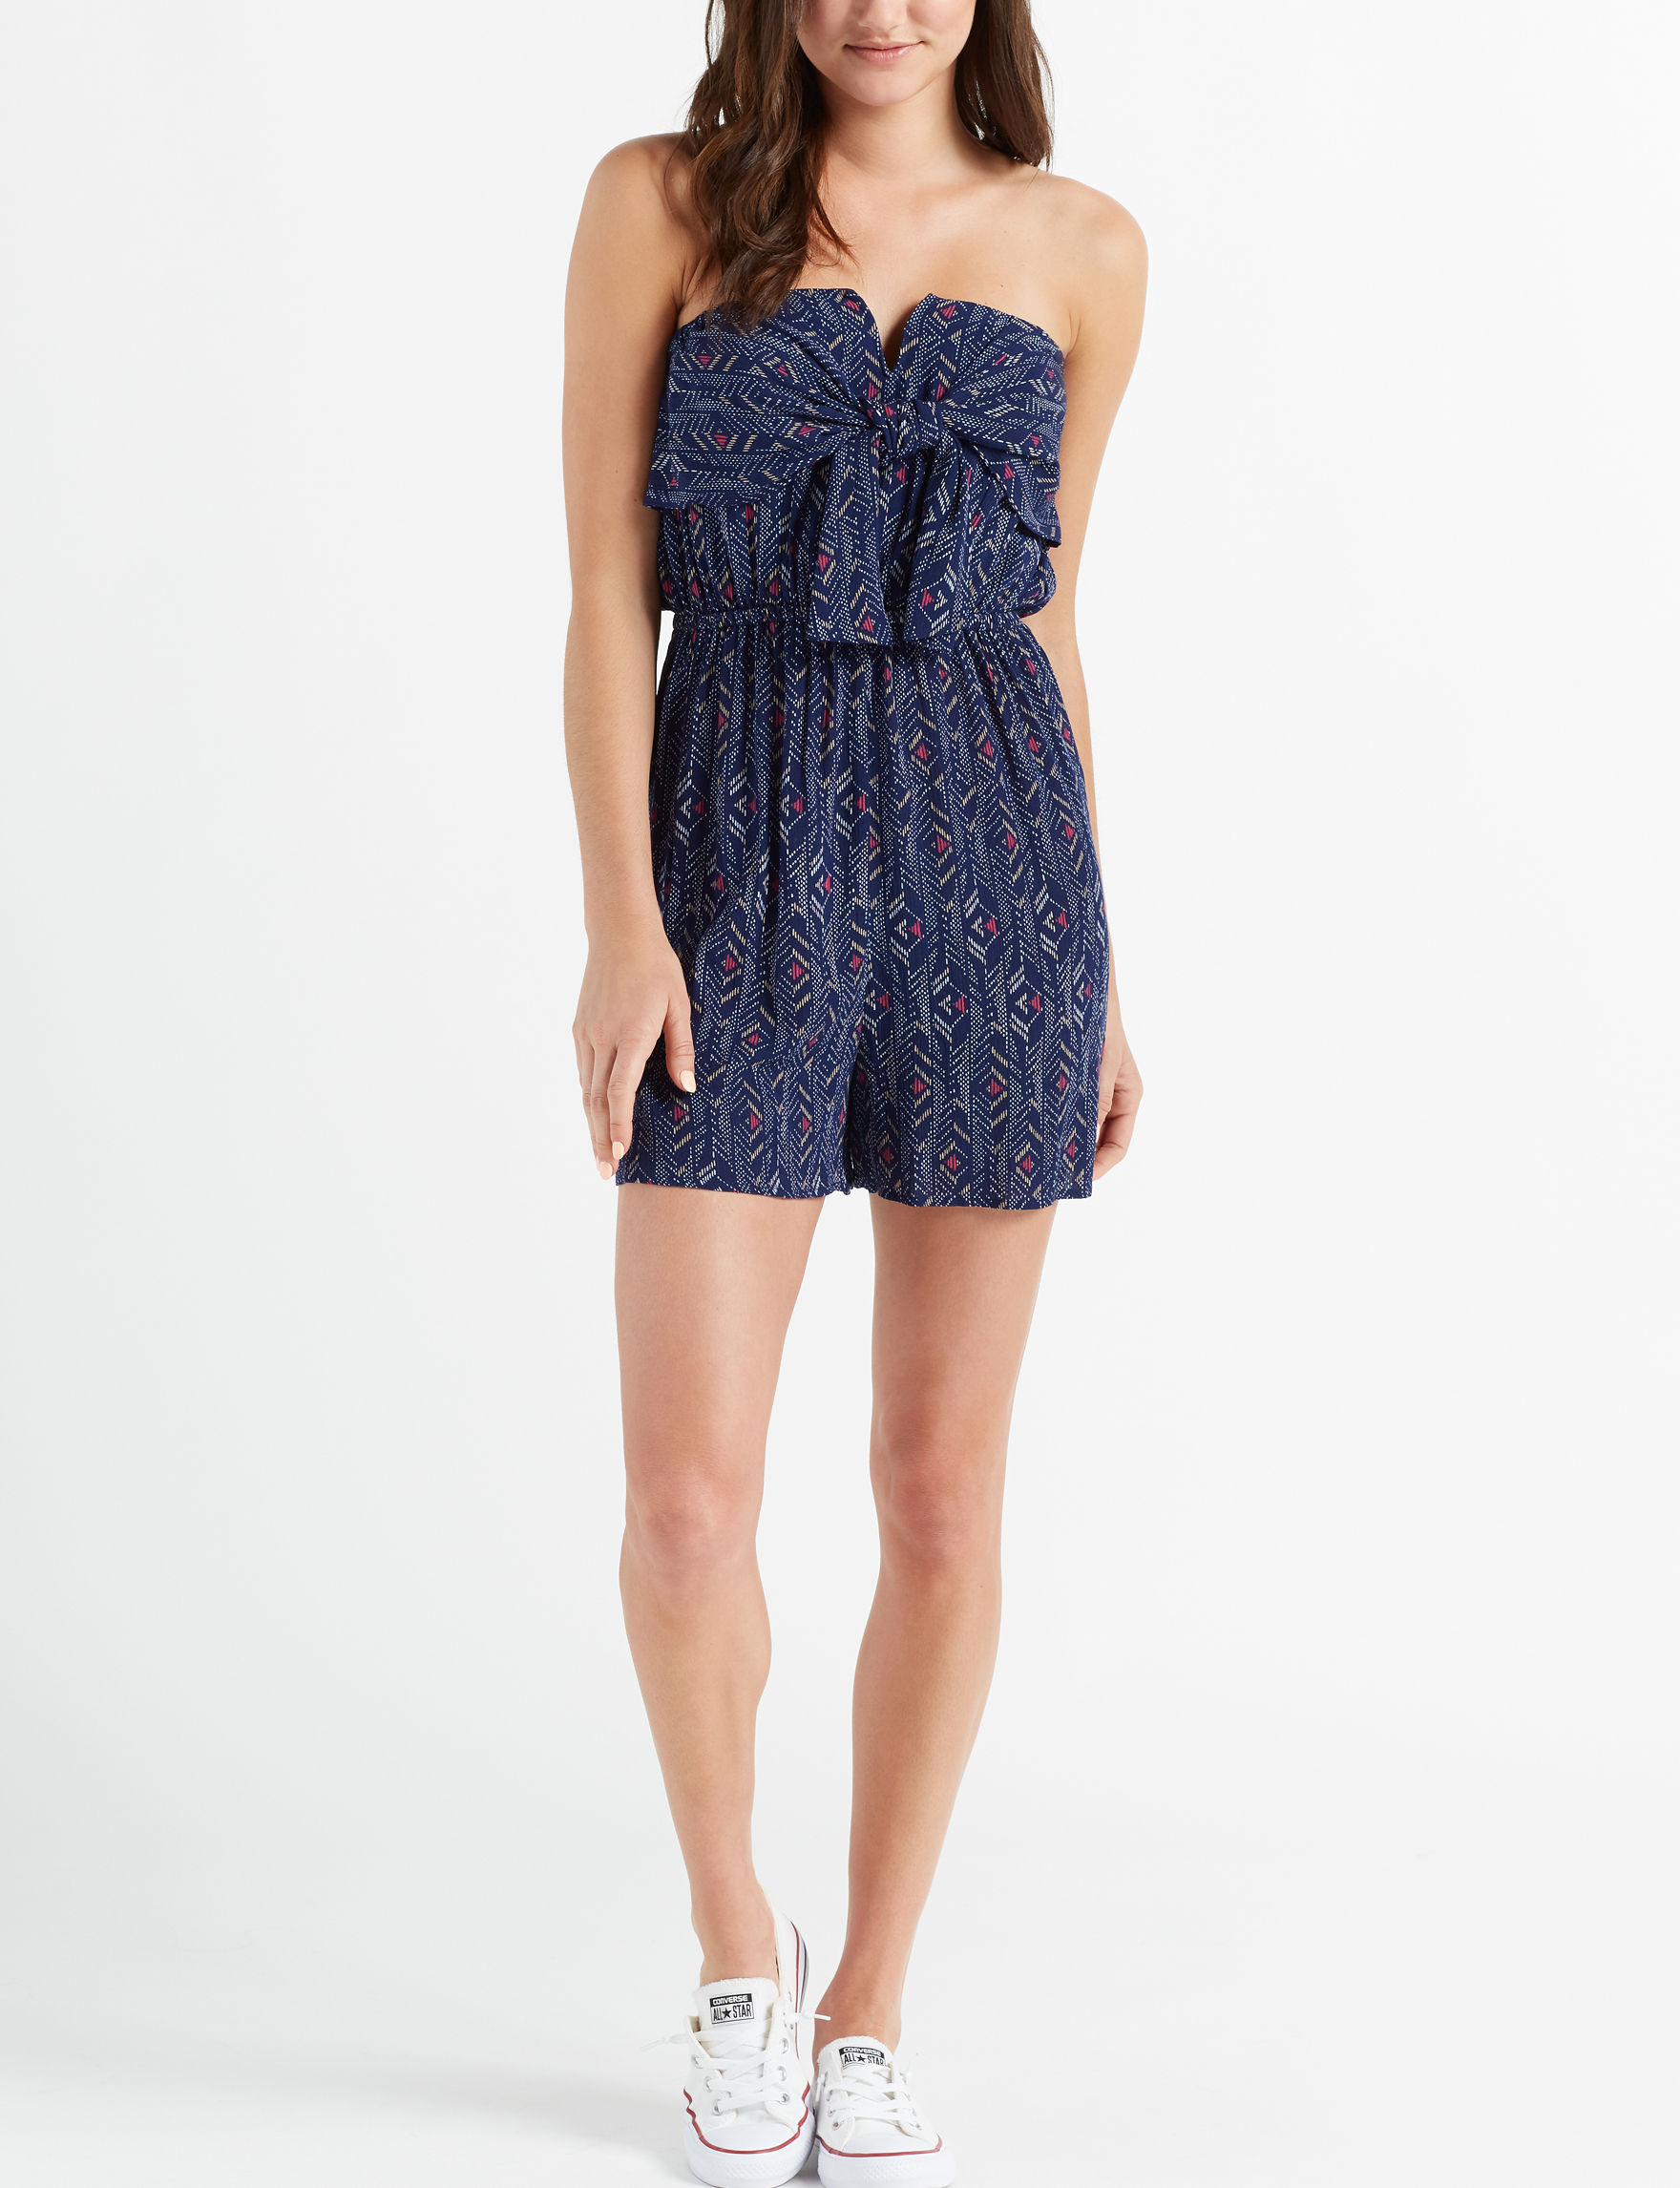 Wishful Park Navy Everyday & Casual Strapless